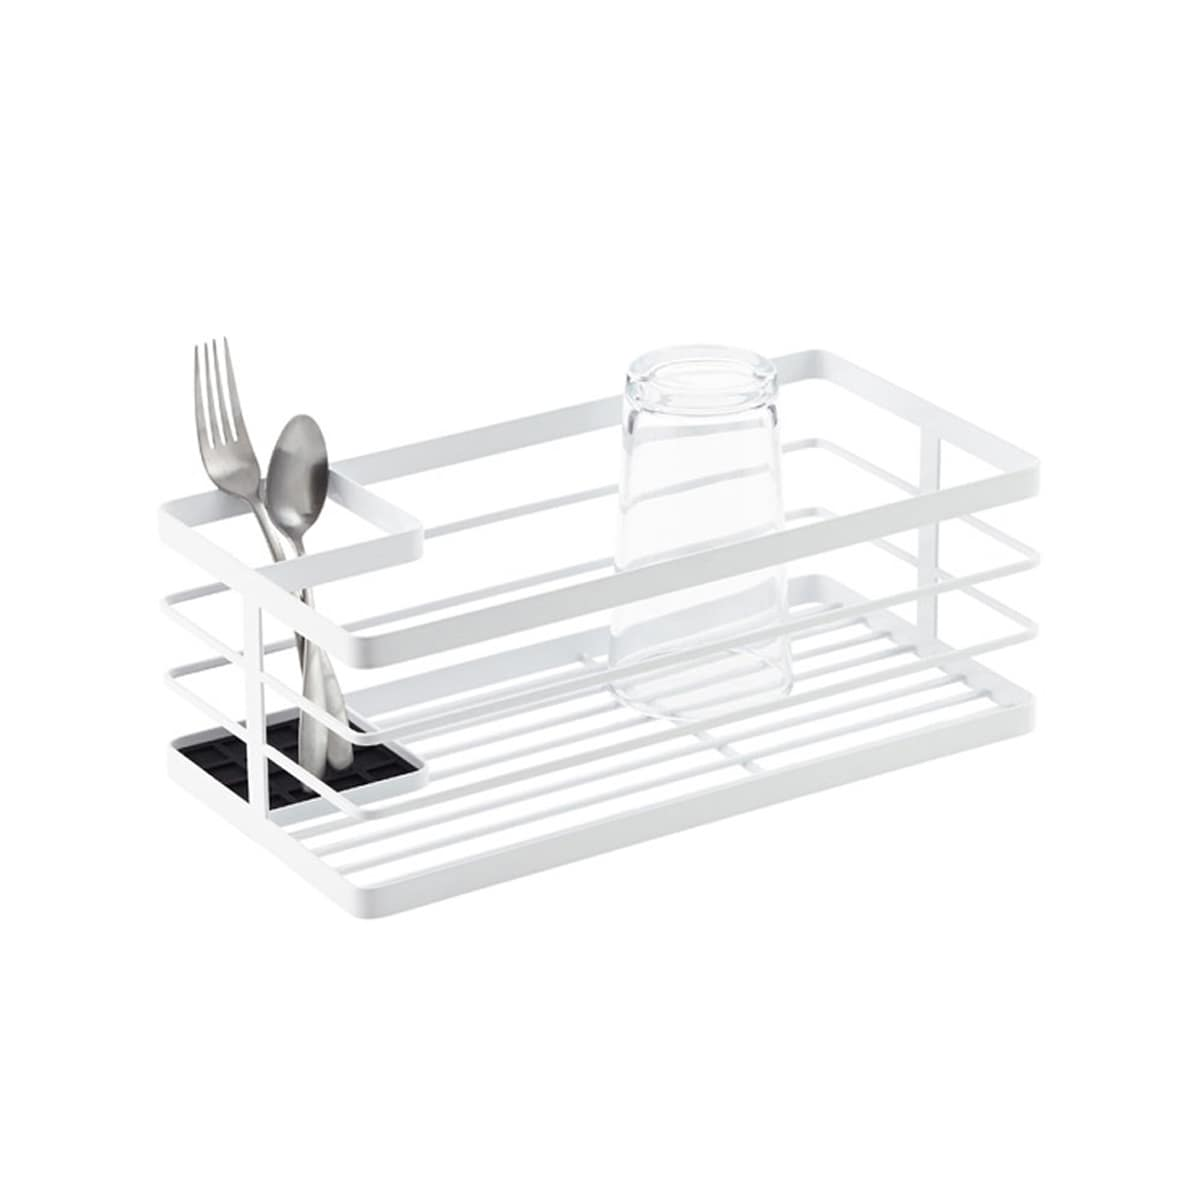 10 Dish Drying Racks That Are Better than a Tea Towel: gallery image 11